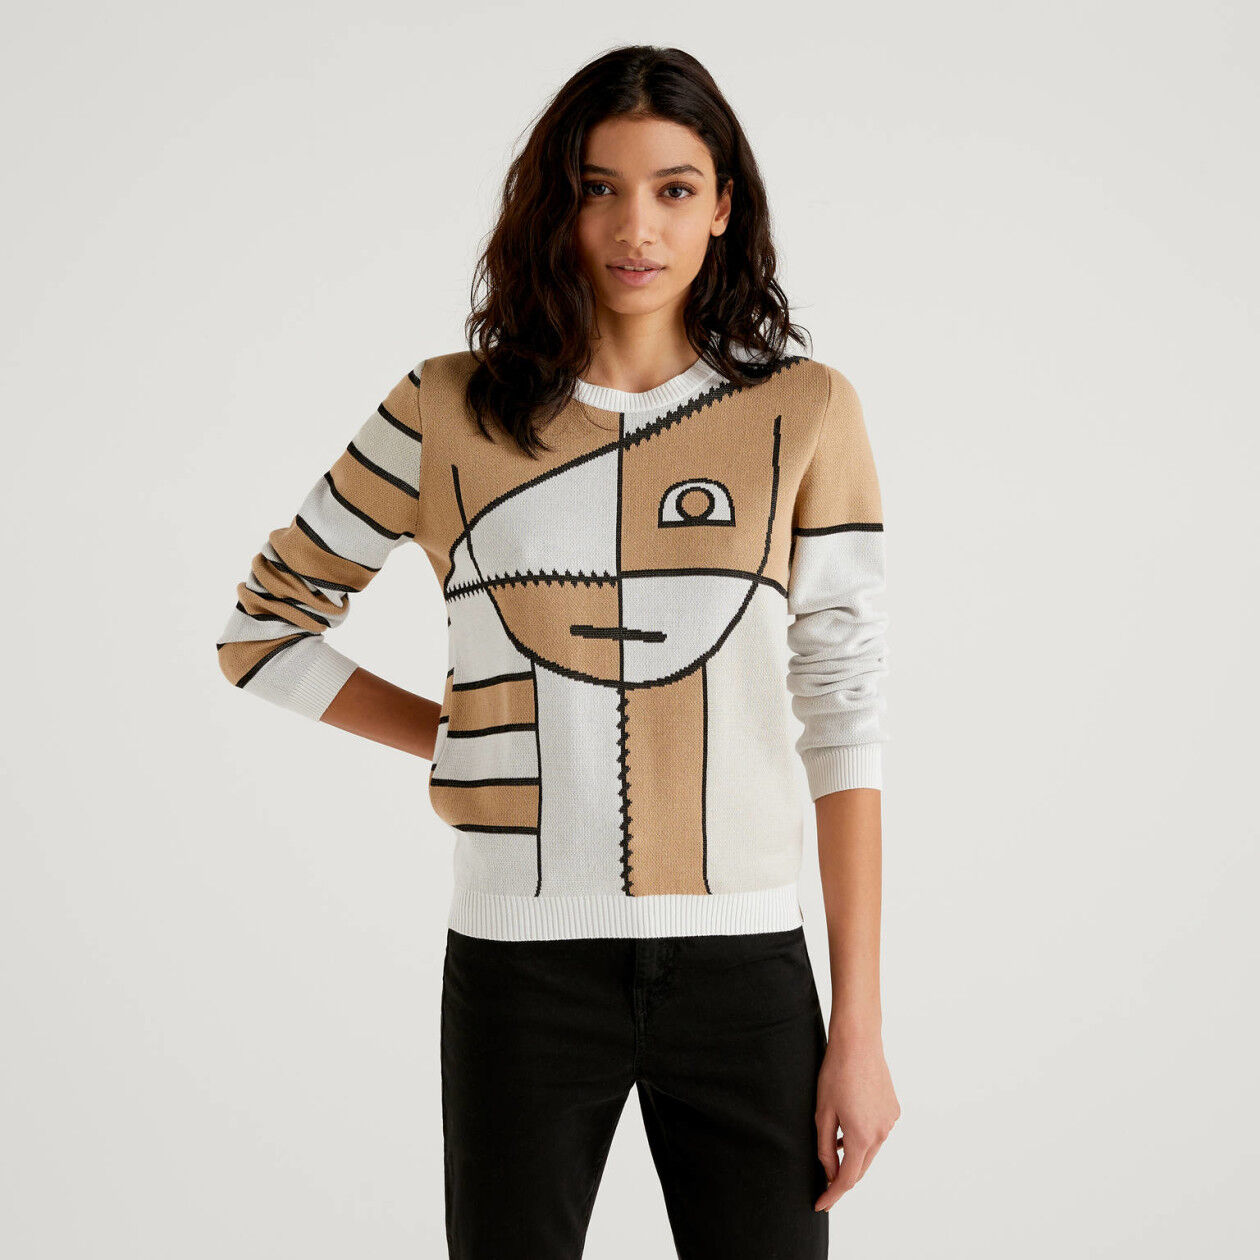 Sweater with stylized design